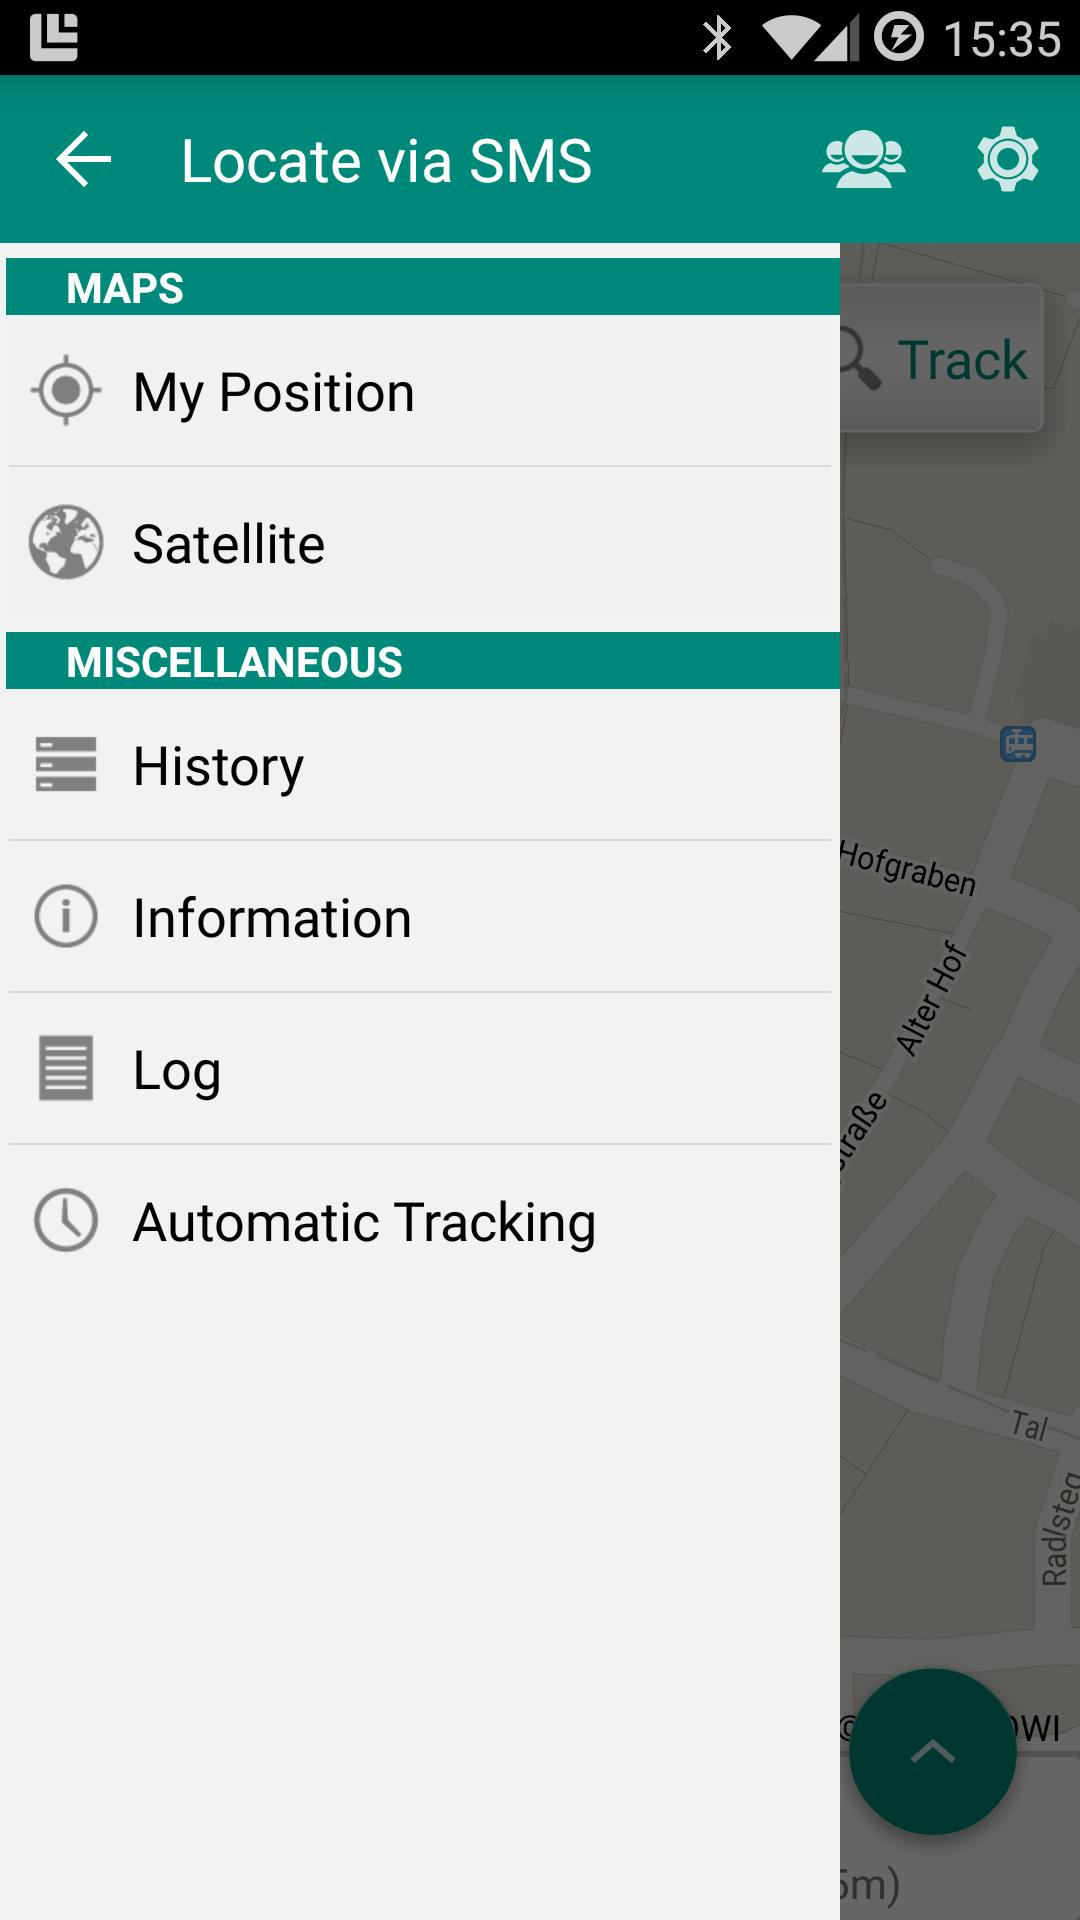 Locate via SMS for Android - APK Download